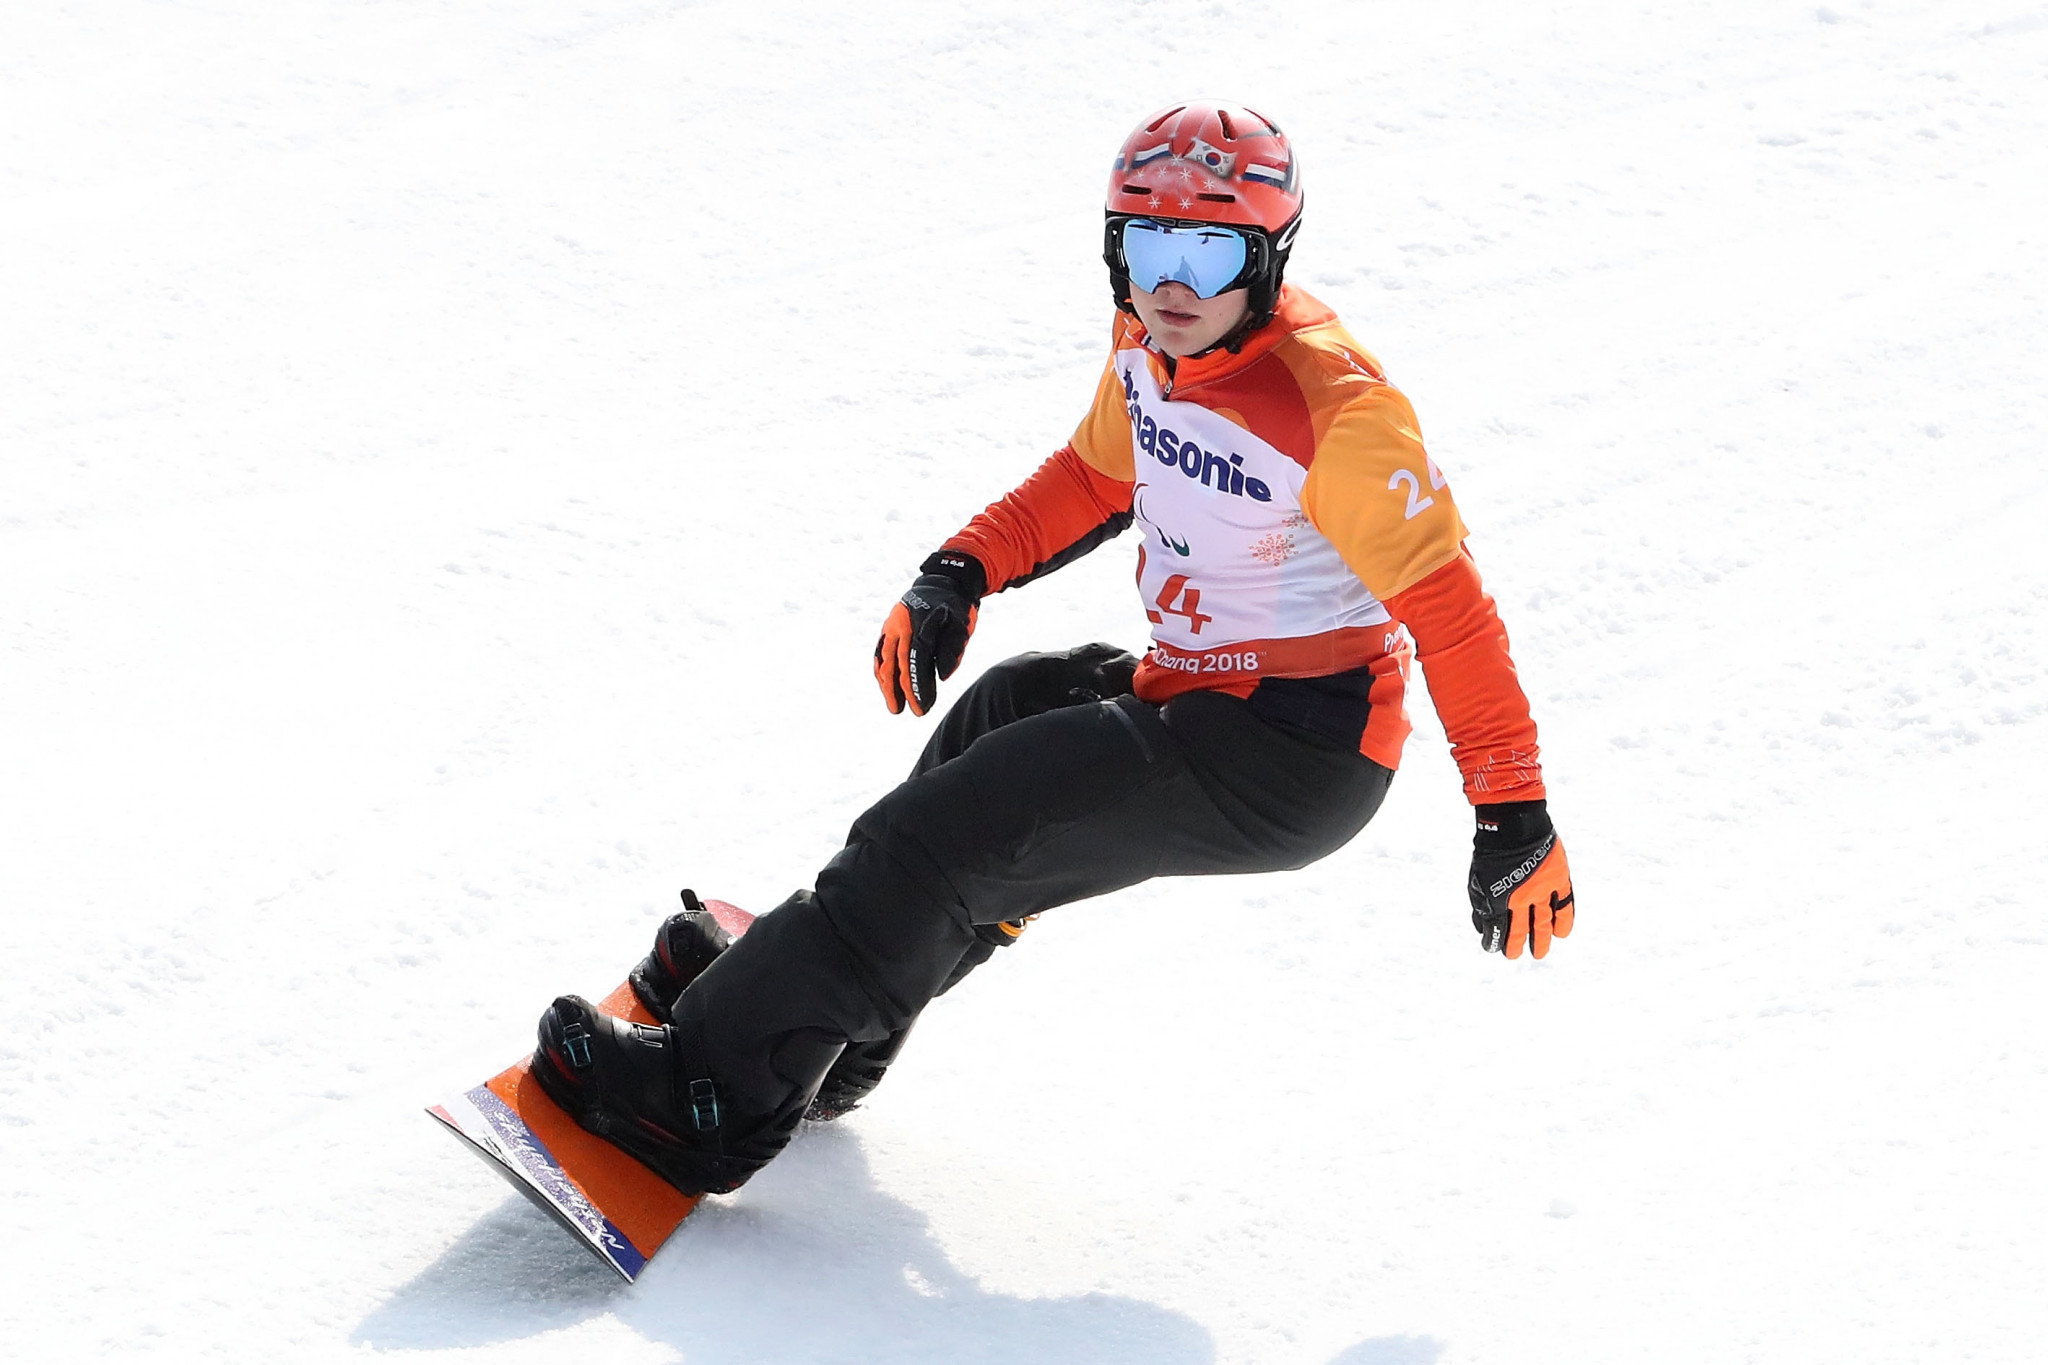 Vos and Bunschoten earn gold for Dutch team at World Para Snowboard World Cup